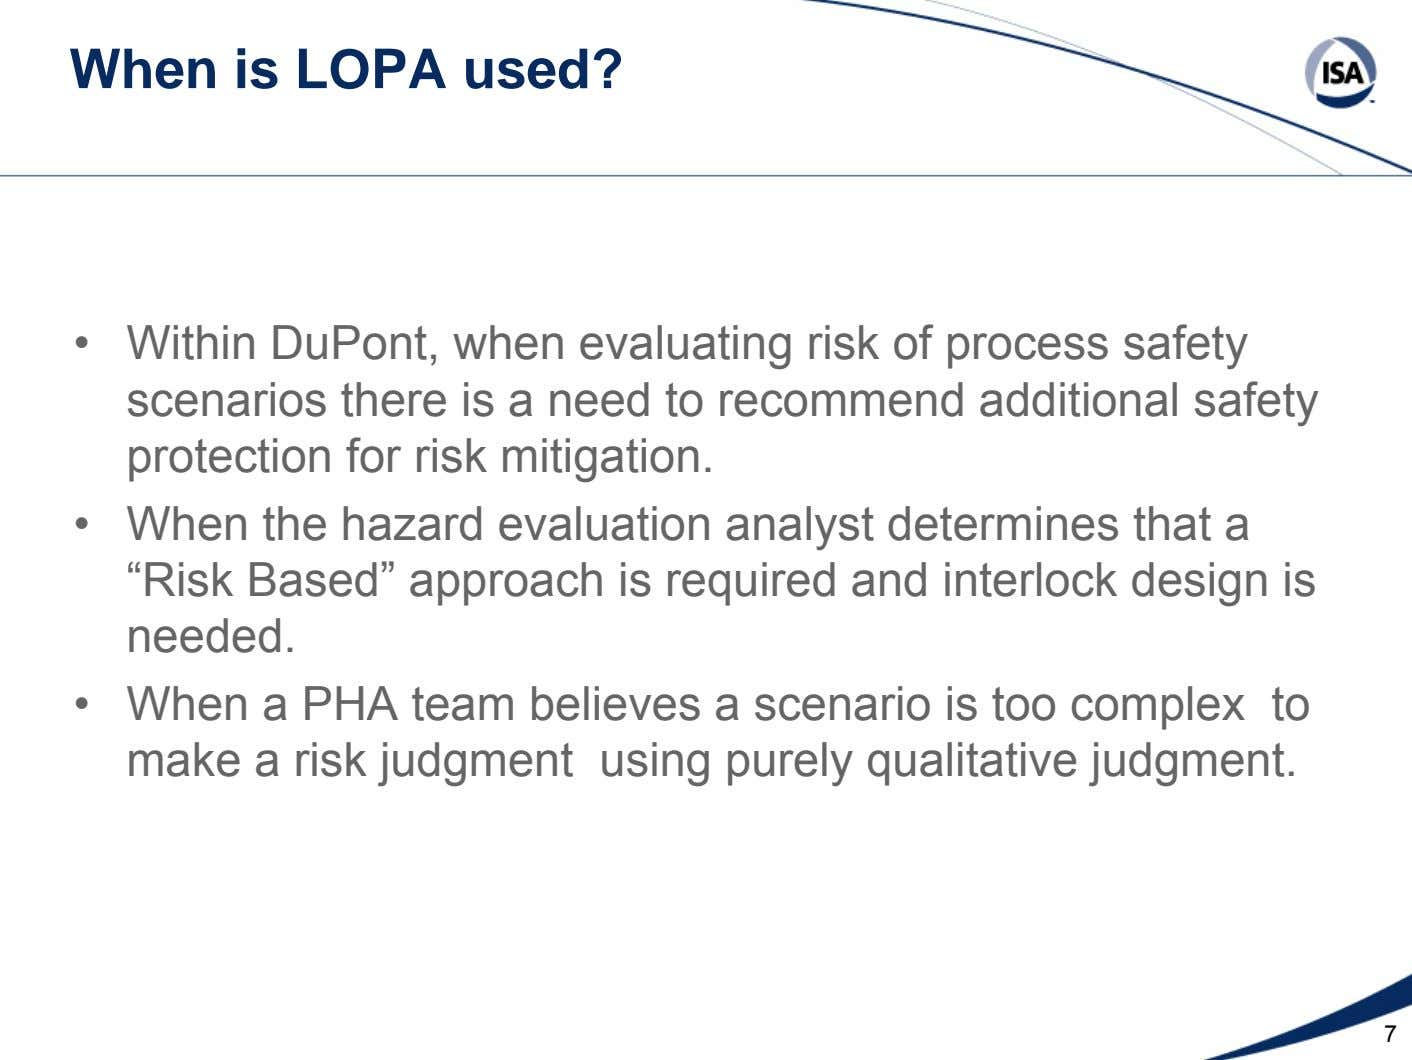 When is LOPA used? • Within DuPont, when evaluating risk of process safety scenarios there is